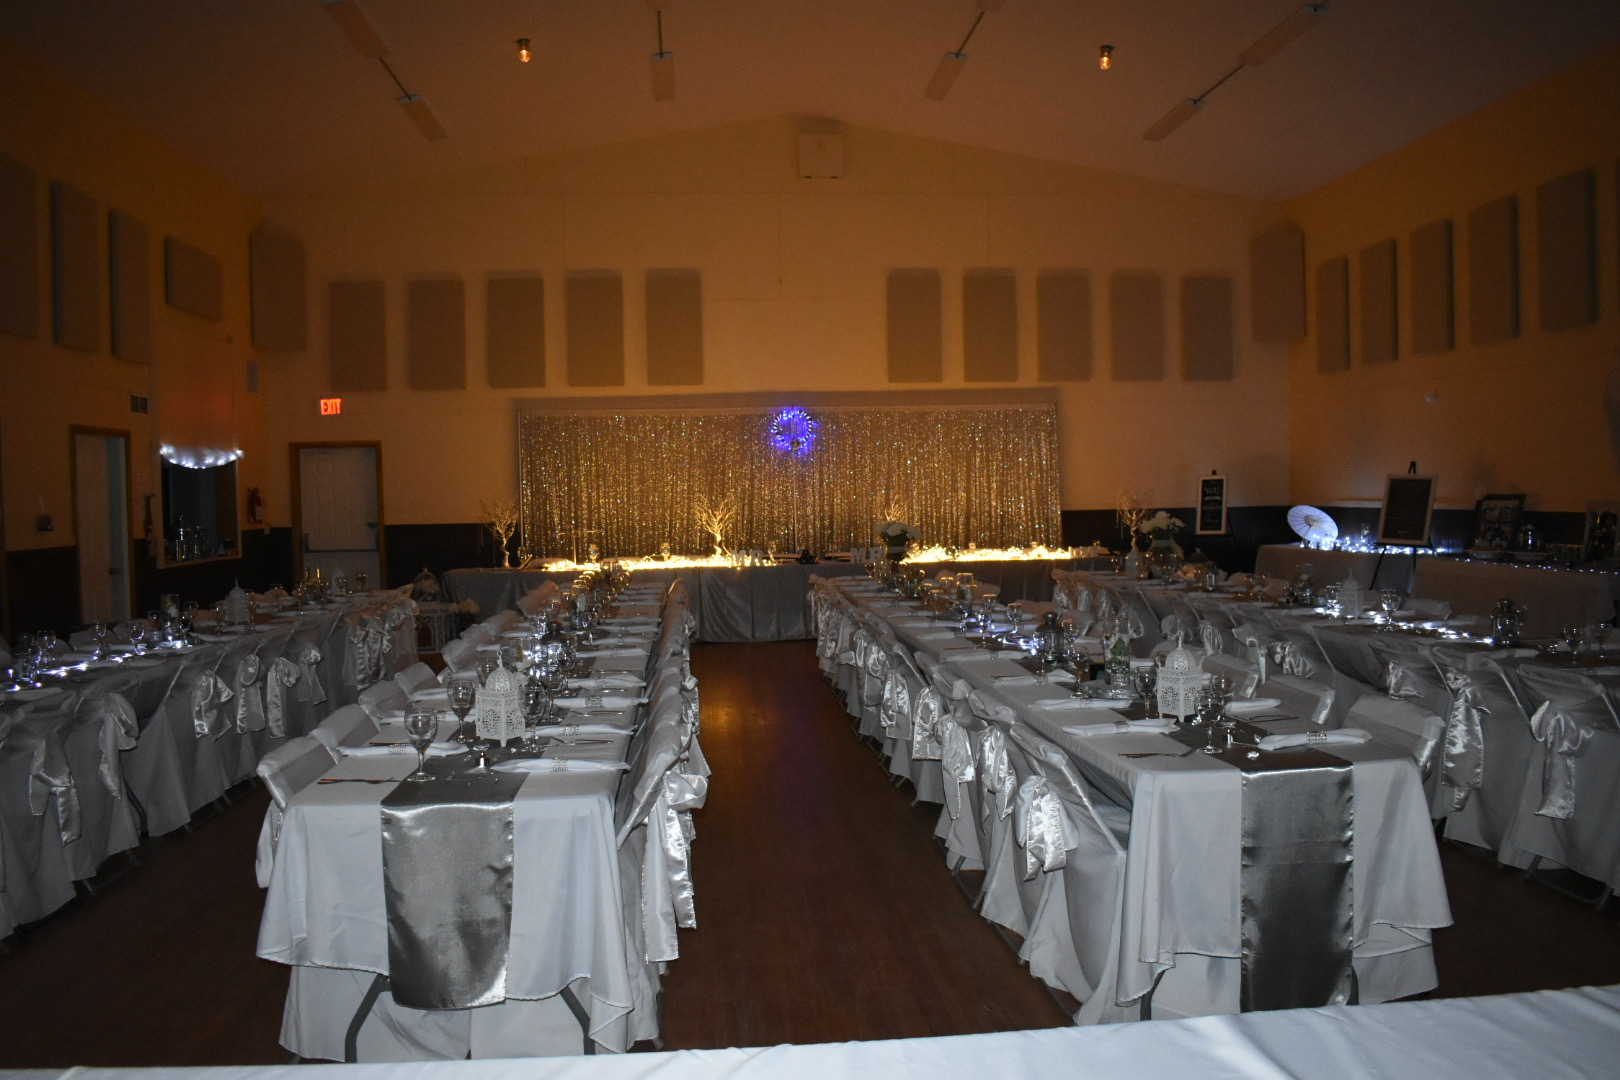 Hall interior decorated for wedding